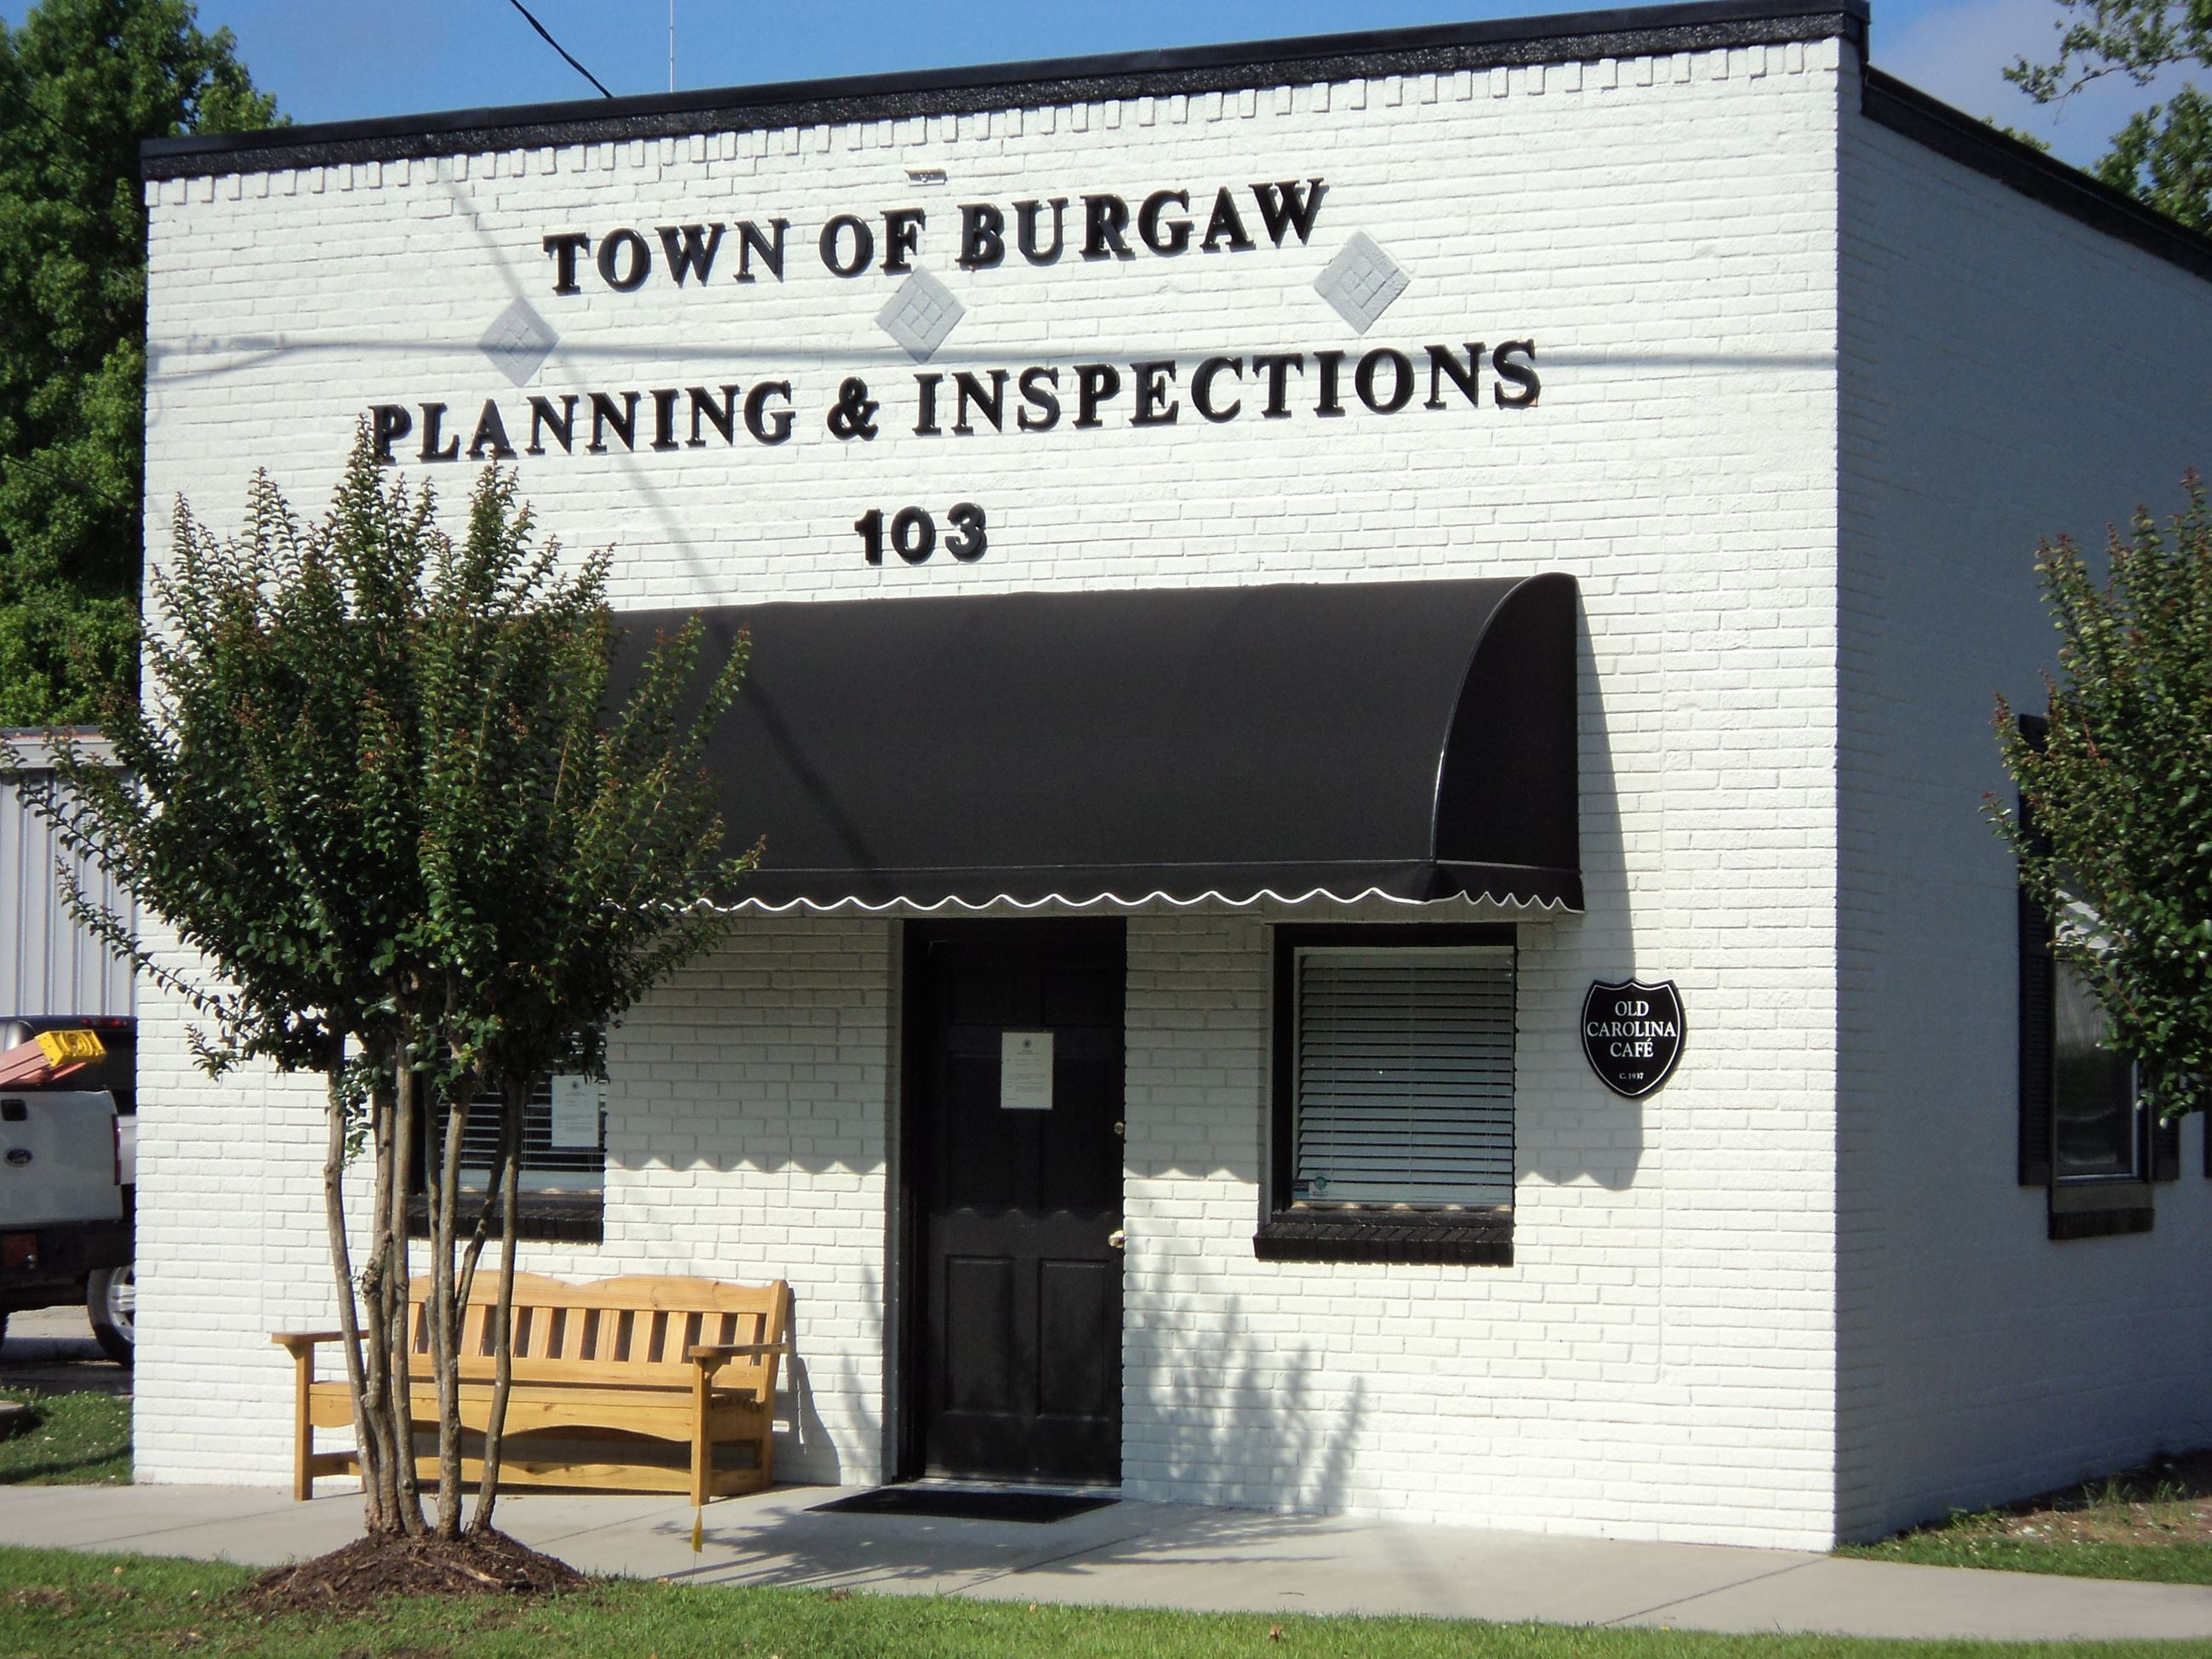 Planning and Inspections Building